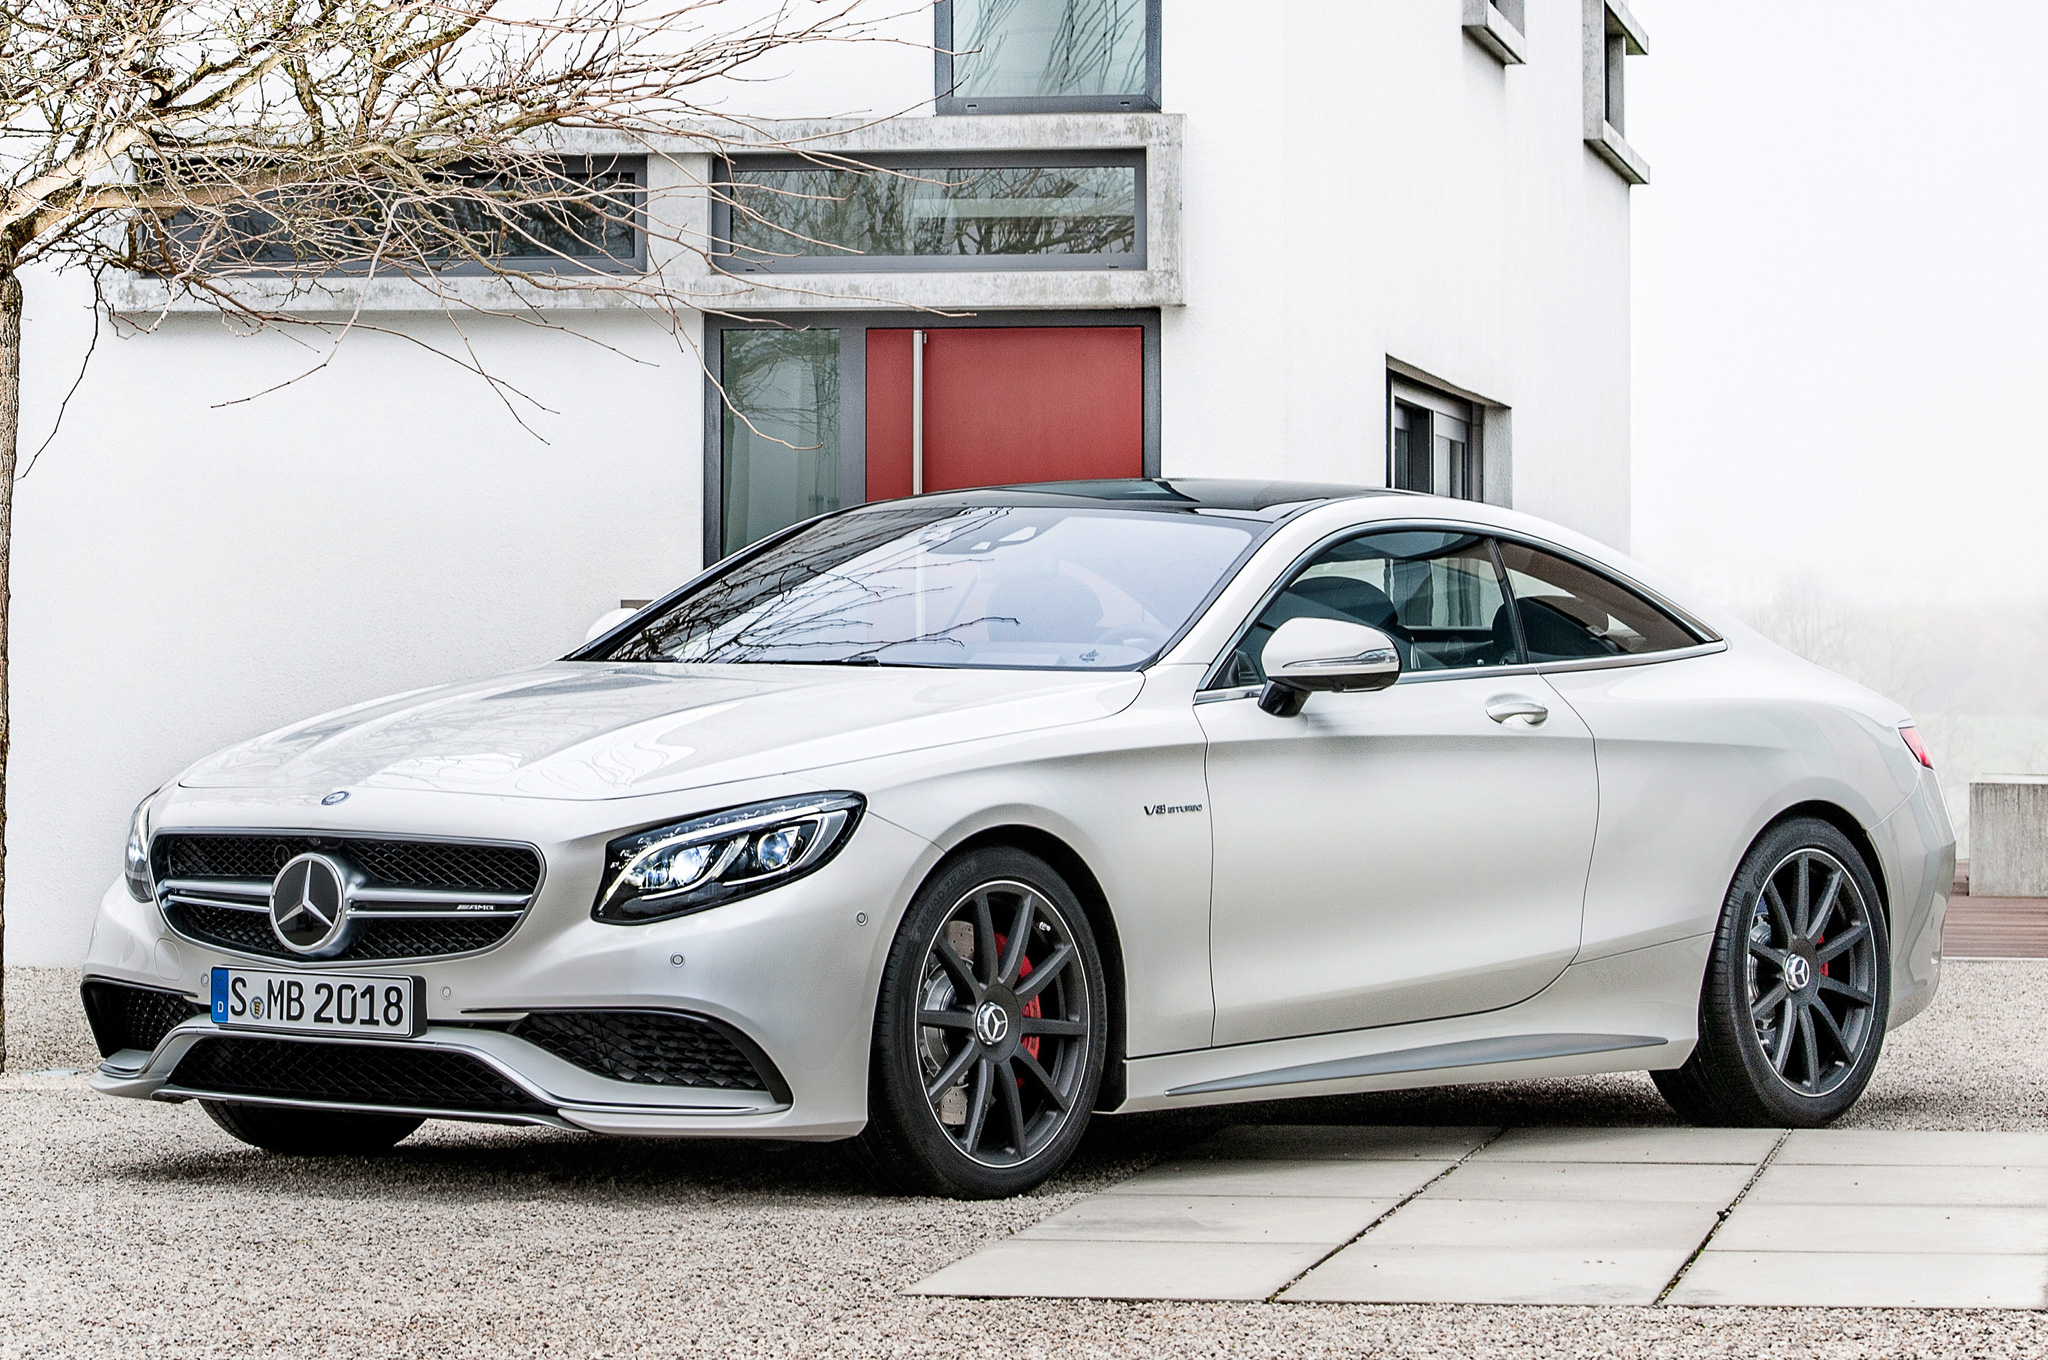 Mercedes Rolls Out S63 AMG Sedan At Rs 2.53 Crore